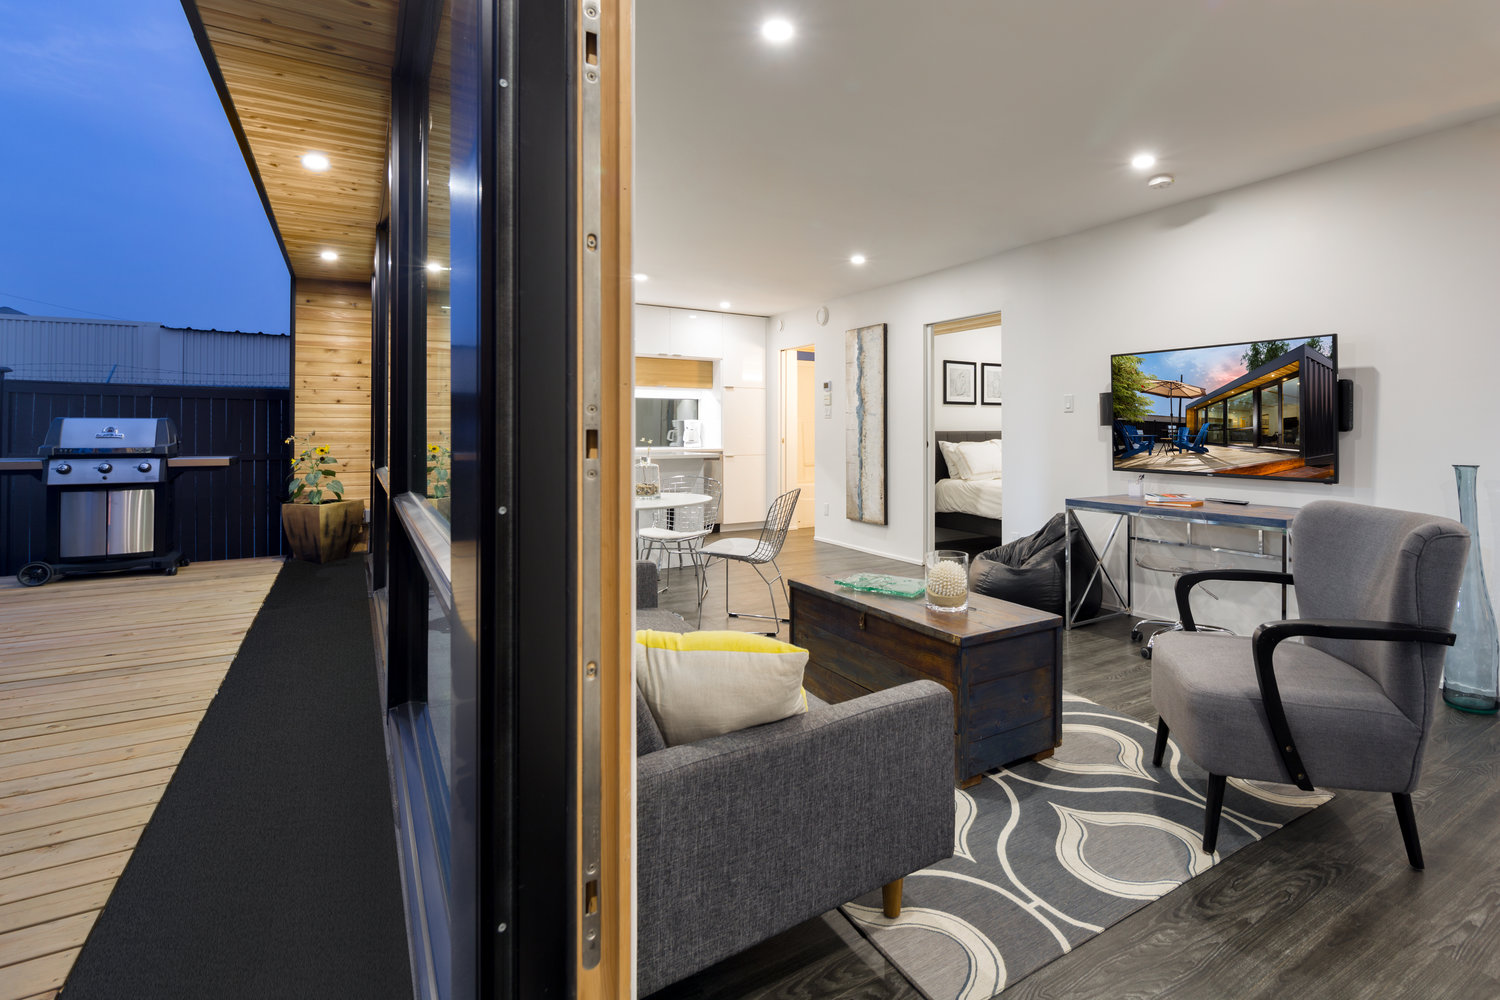 Modern Shipping Container Home us home 2020 — honomobo